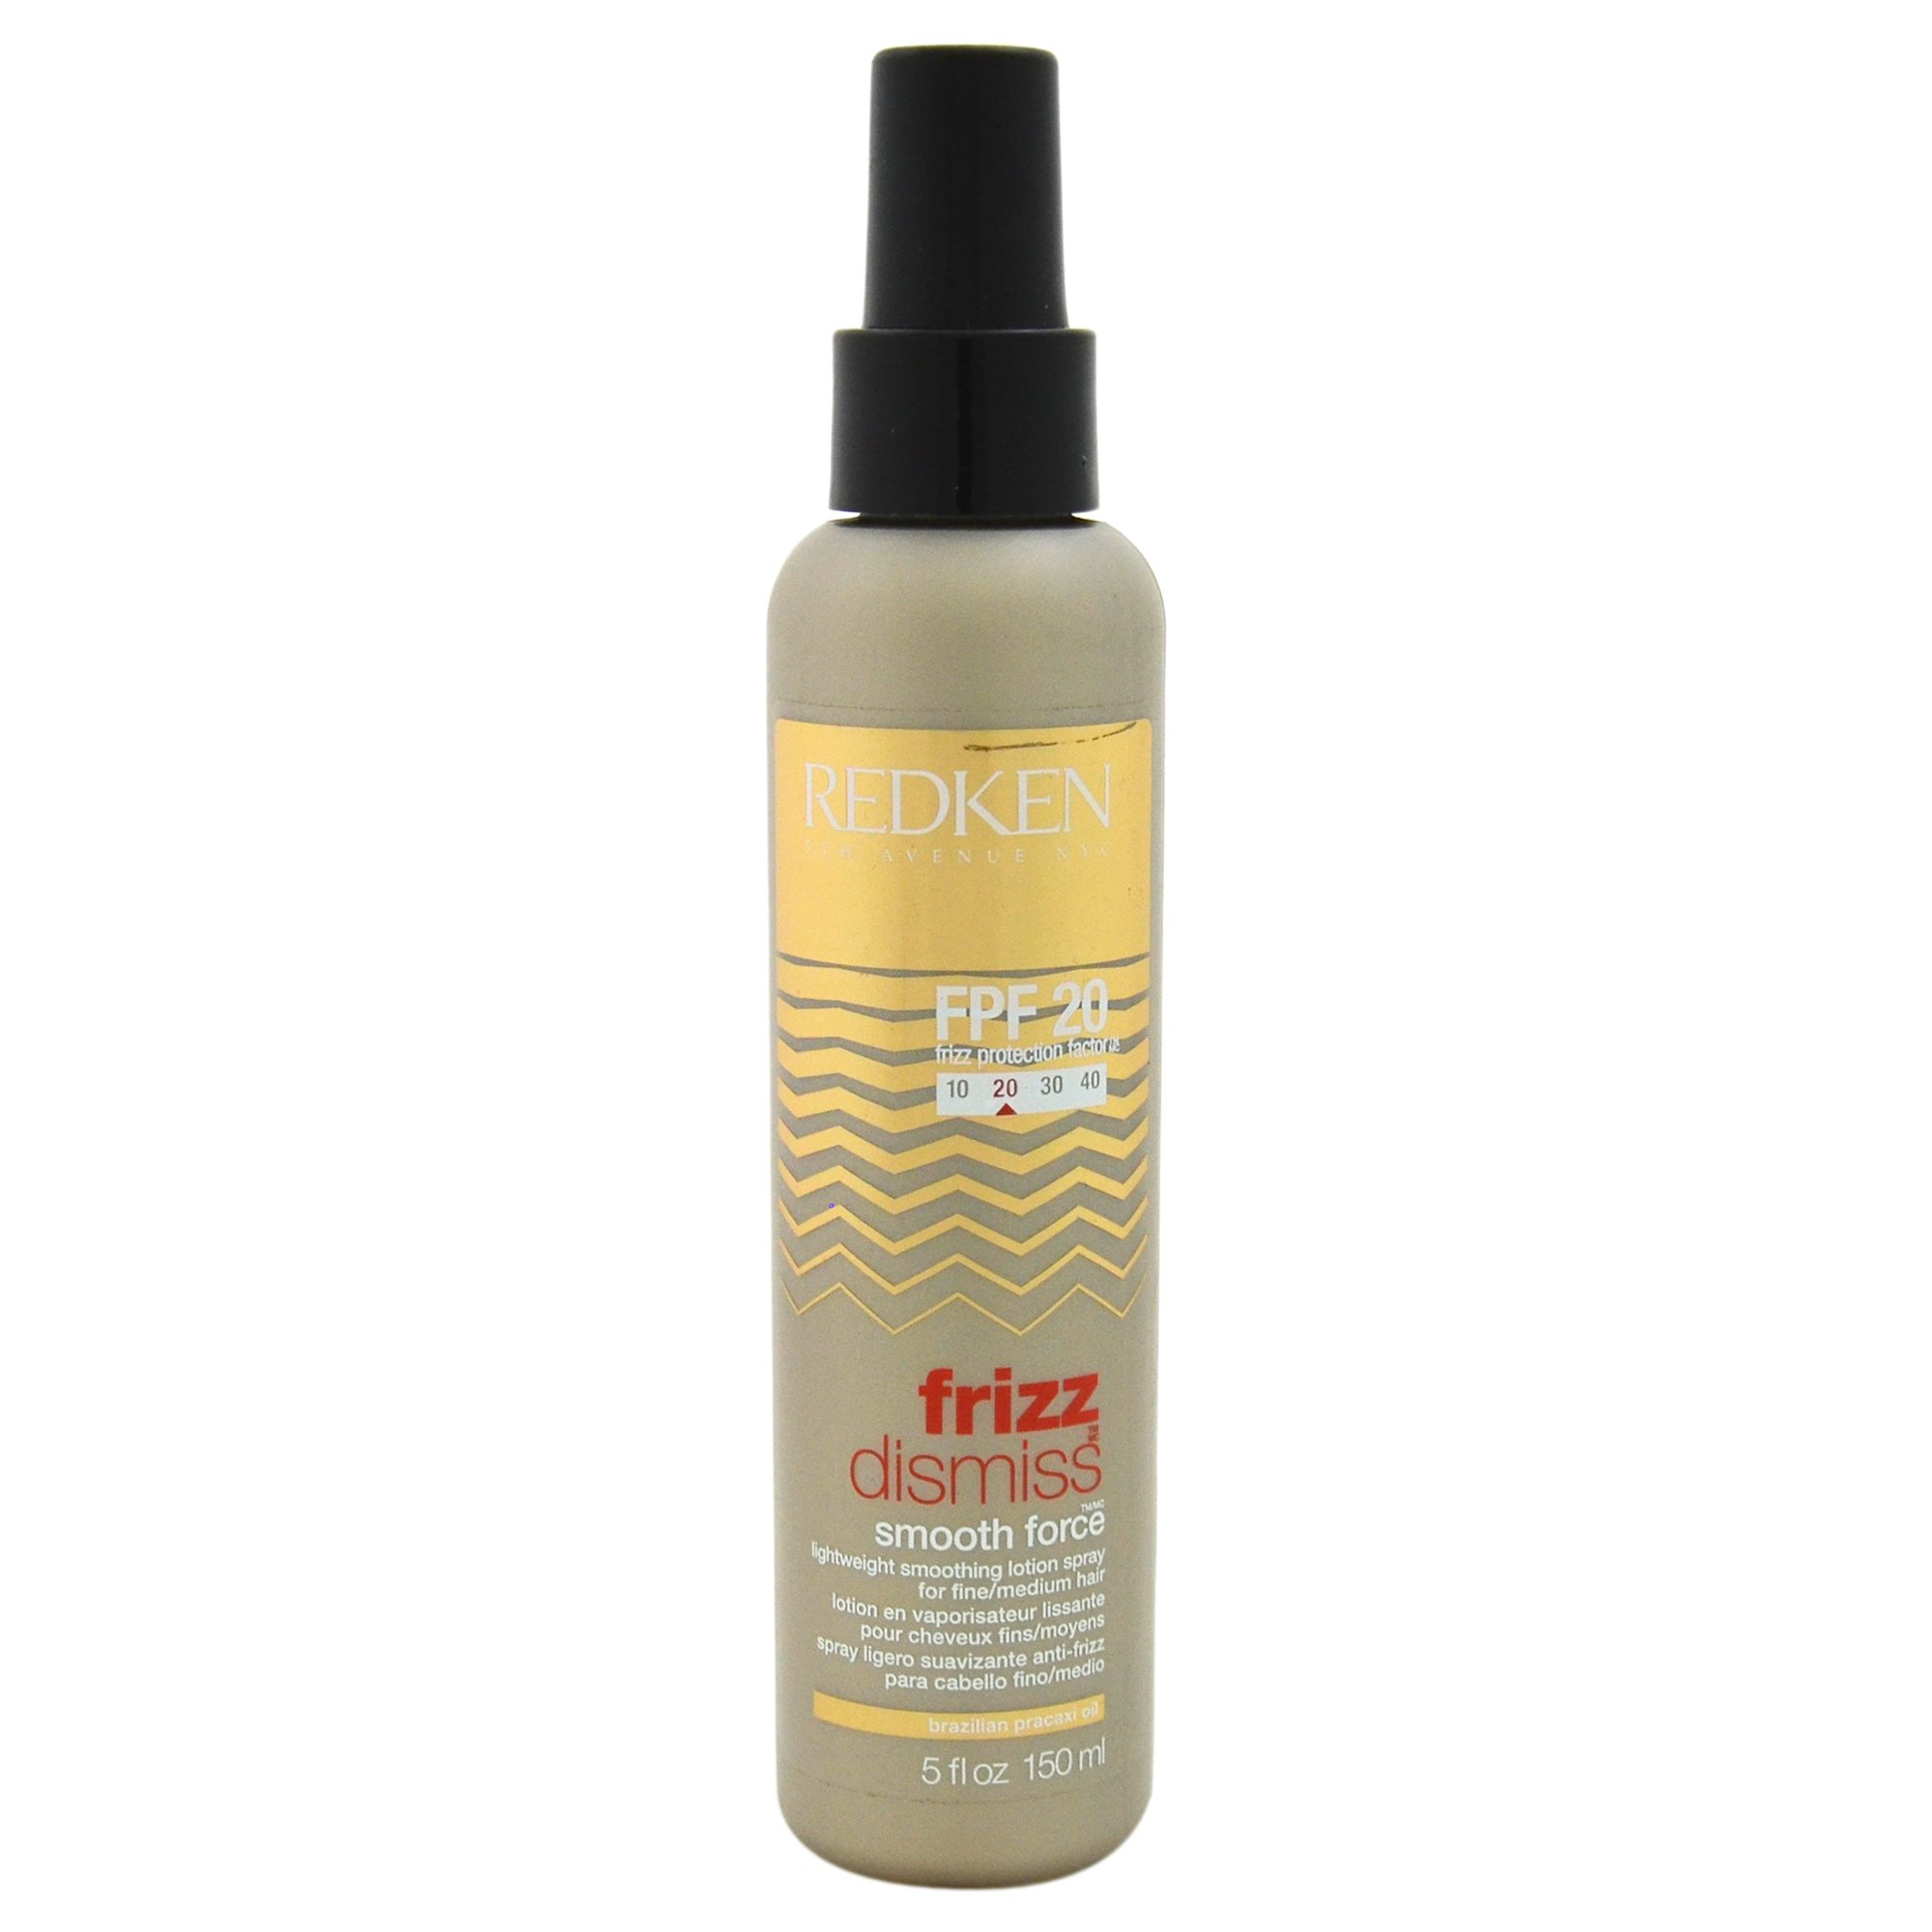 Redken Unisex Frizz Dismiss FPF20 Smooth Force Hair Lotion Spray, 5 Ounce by REDKEN